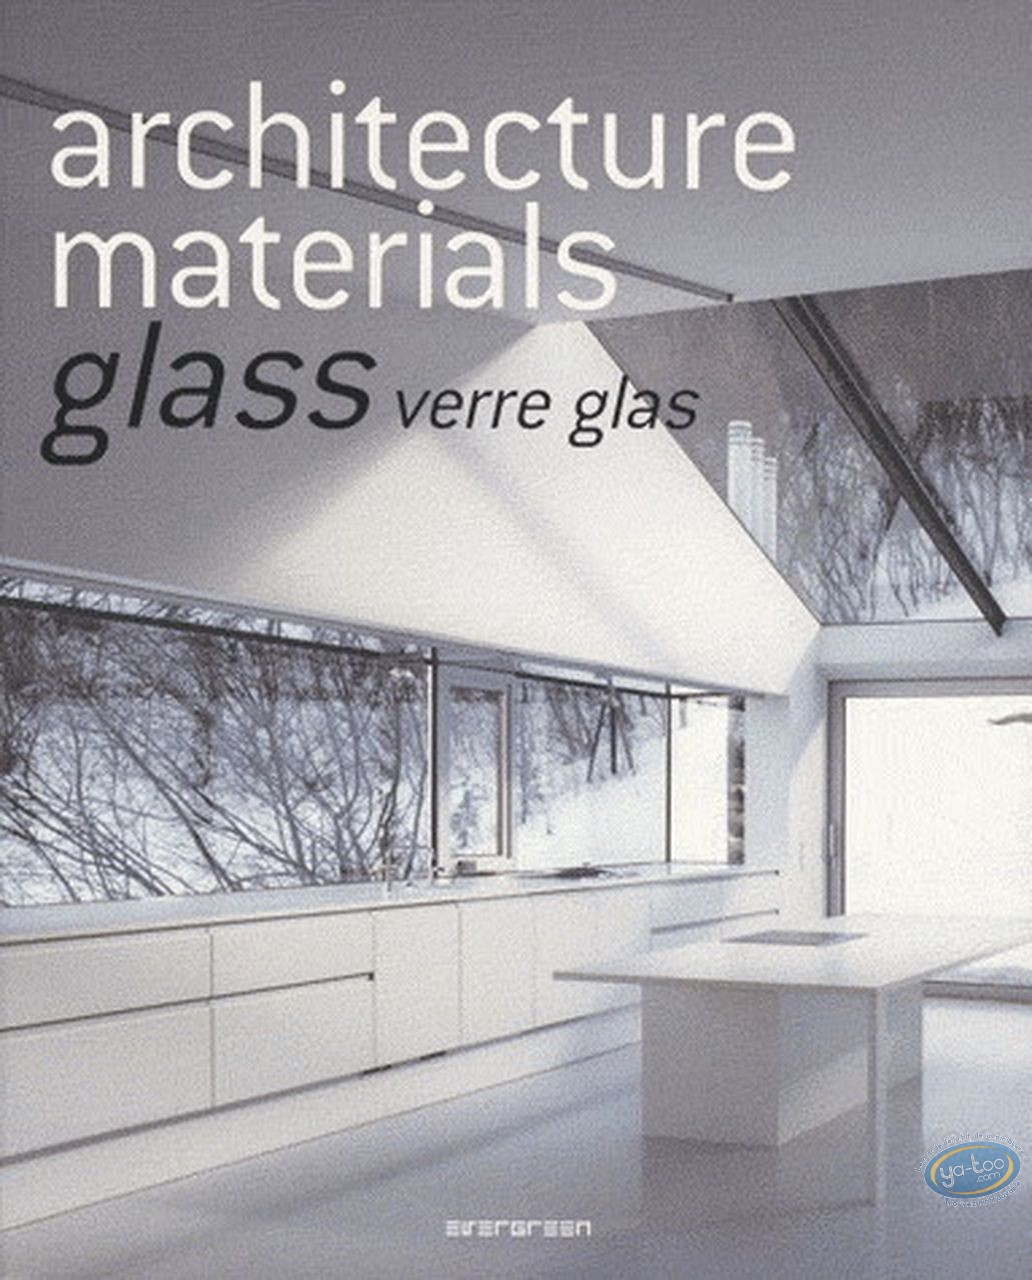 Book, glass, verre, glas